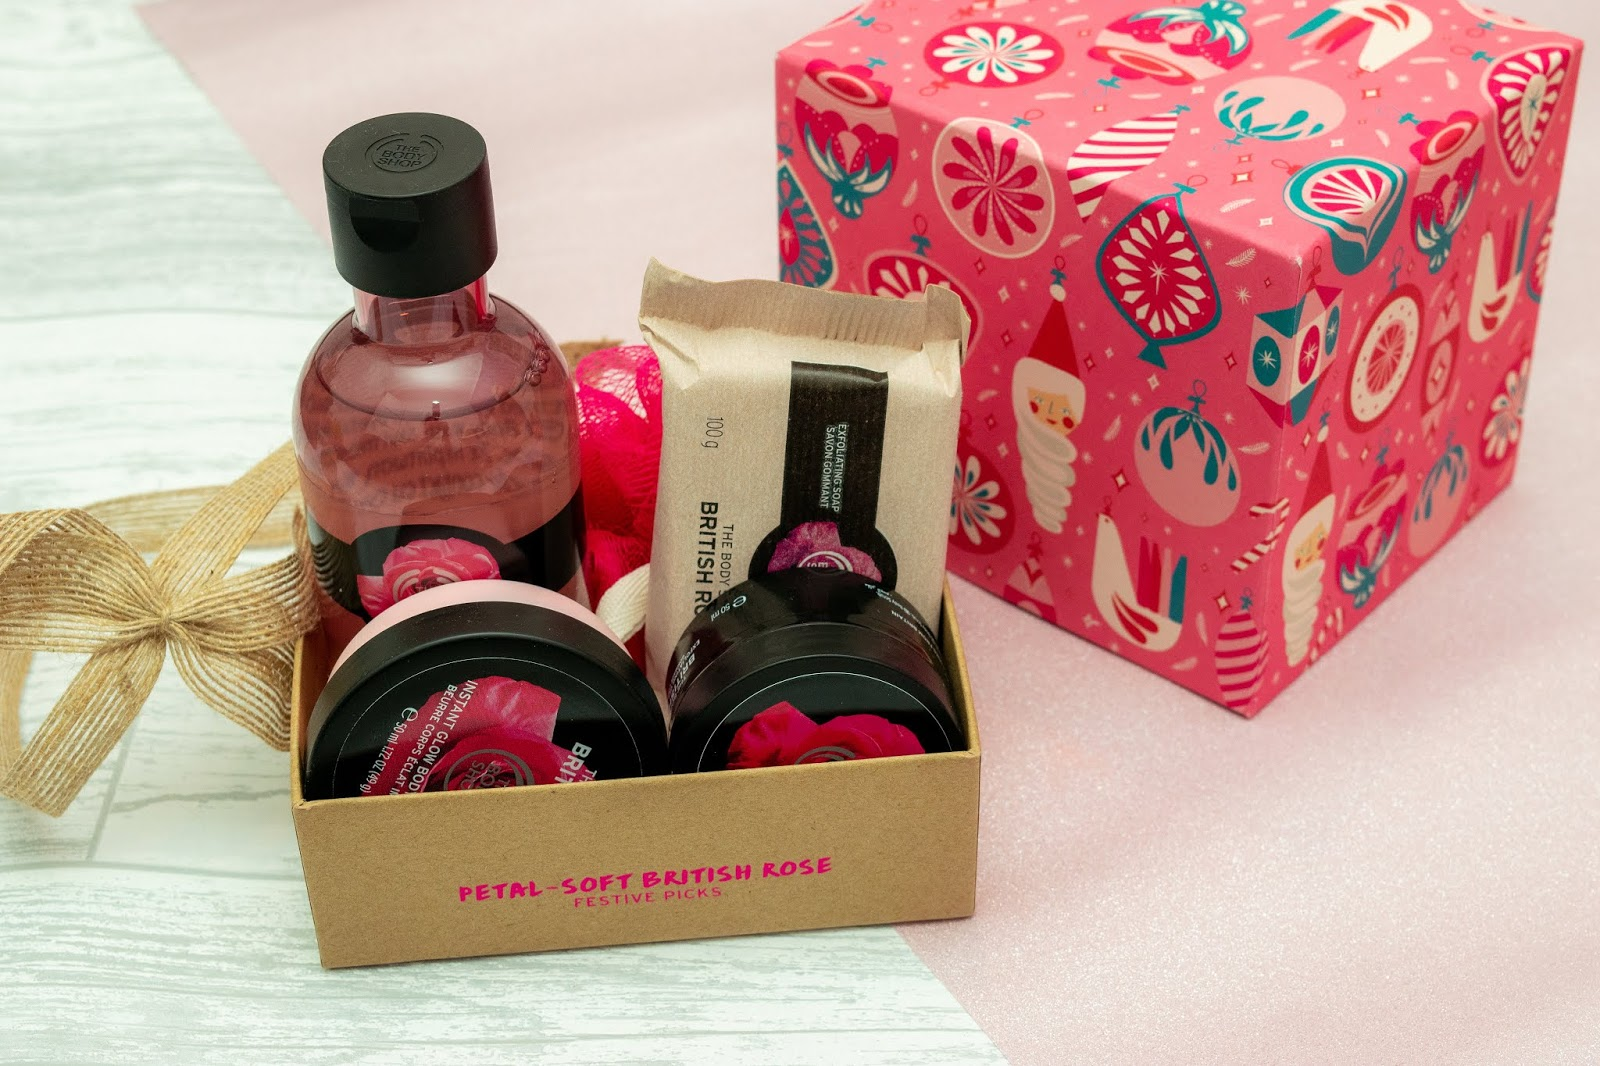 A selection of soap, scrubs, shower gels in pink packaging.